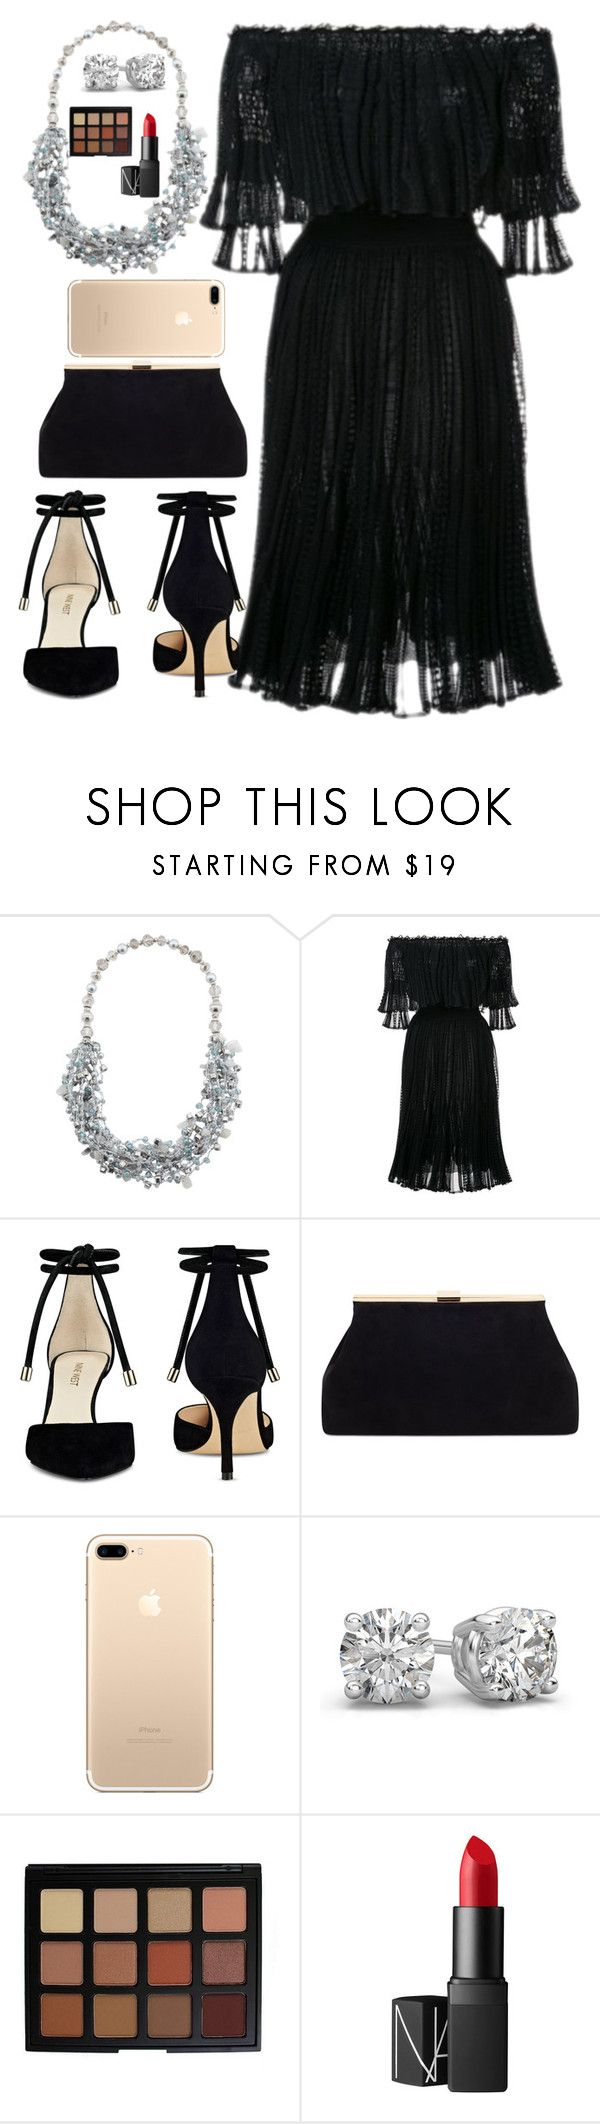 """chains by nick jonas"" by partymileys ❤ liked on Polyvore featuring Alexander McQueen, Nine West, Morphe and NARS Cosmetics"